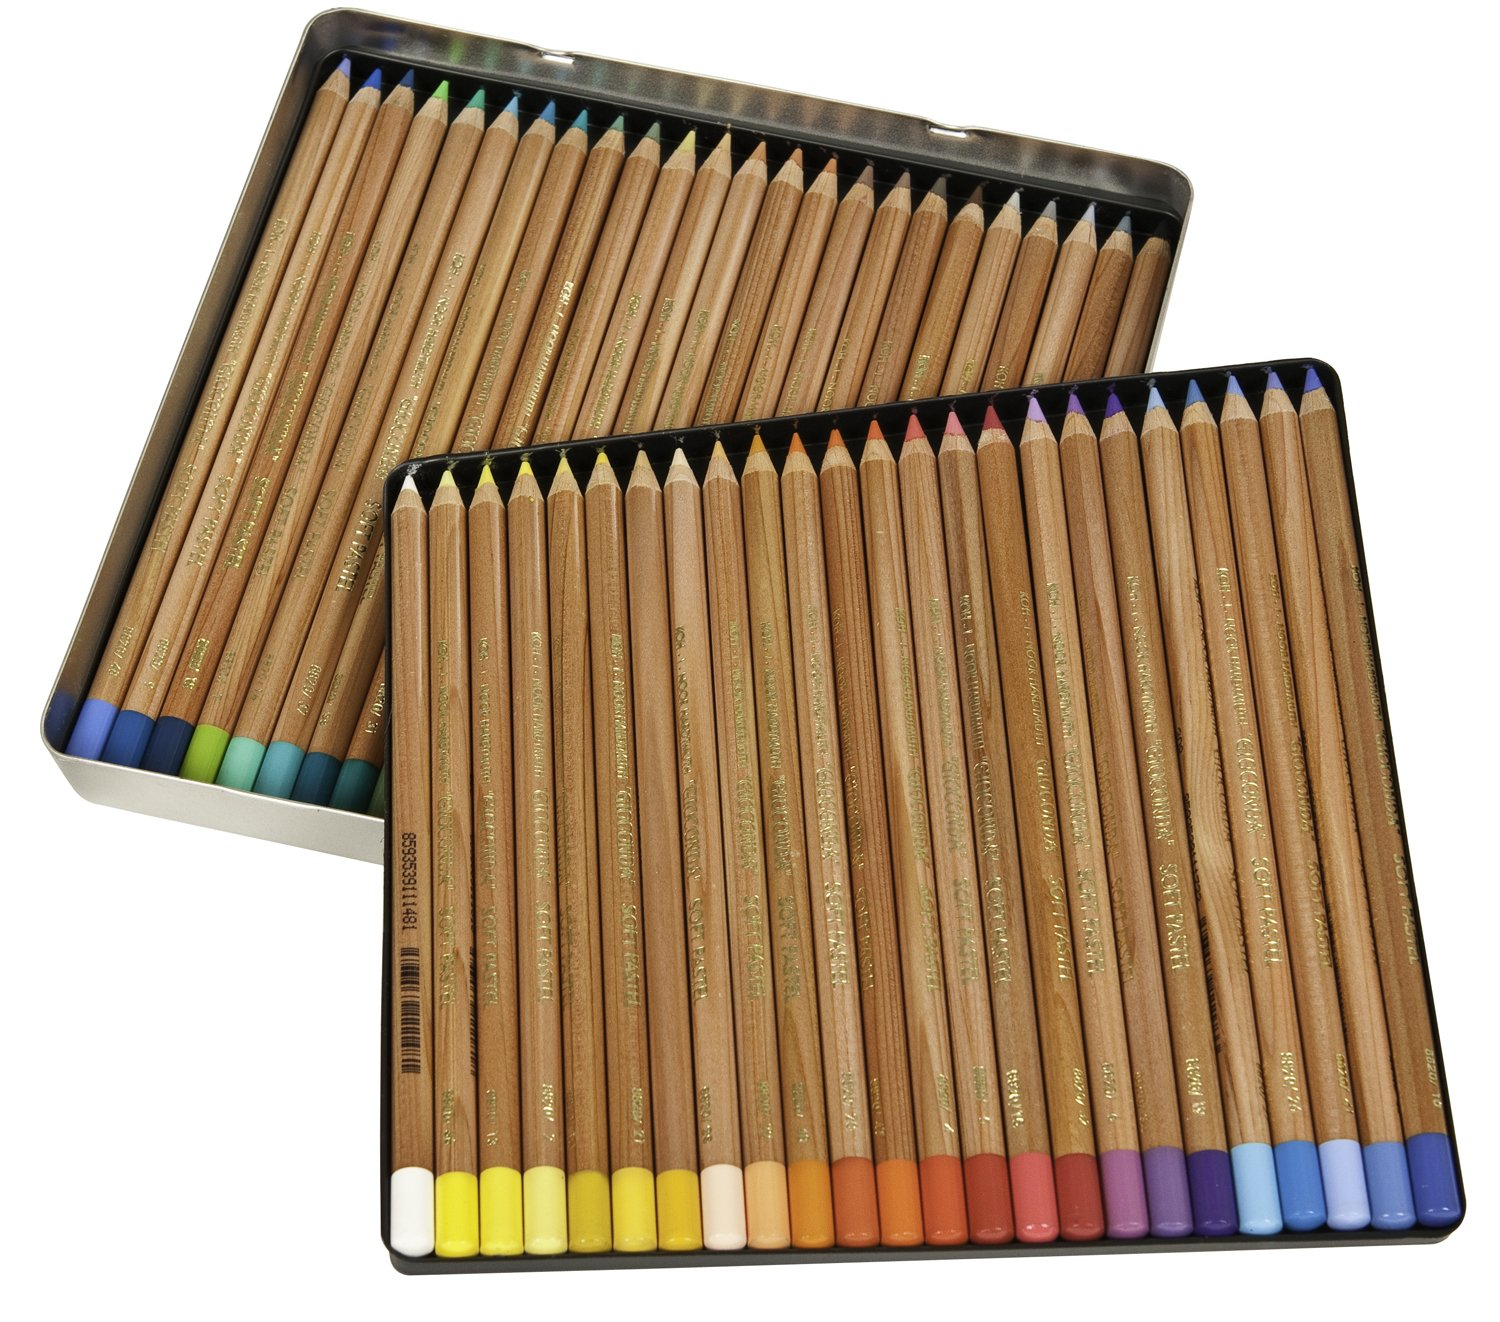 Koh-I-Noor Gioconda Soft Pastel Pencil Set, 48/Each Packed in Tin, Assorted Colored Pencils (FA8828.48)